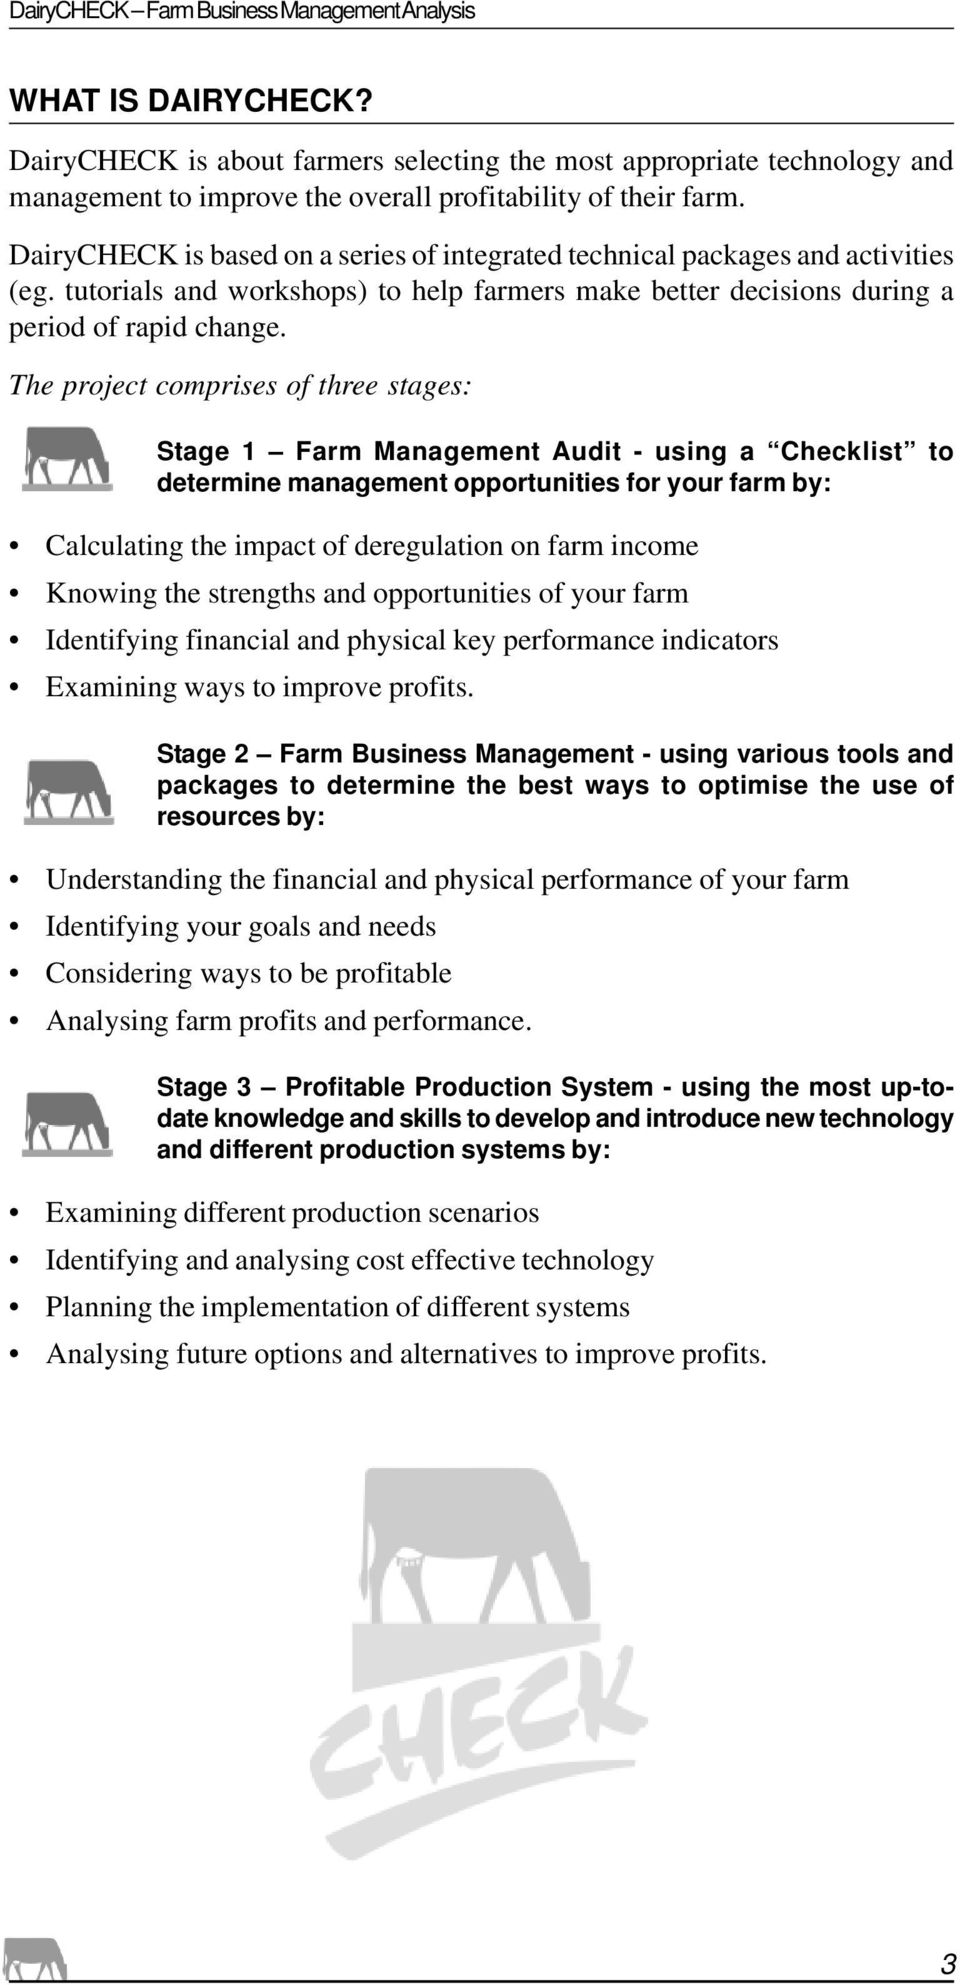 The project comprises of three stages: Stage 1 Farm Management Audit - using a Checklist to determine management opportunities for your farm by: Calculating the impact of deregulation on farm income